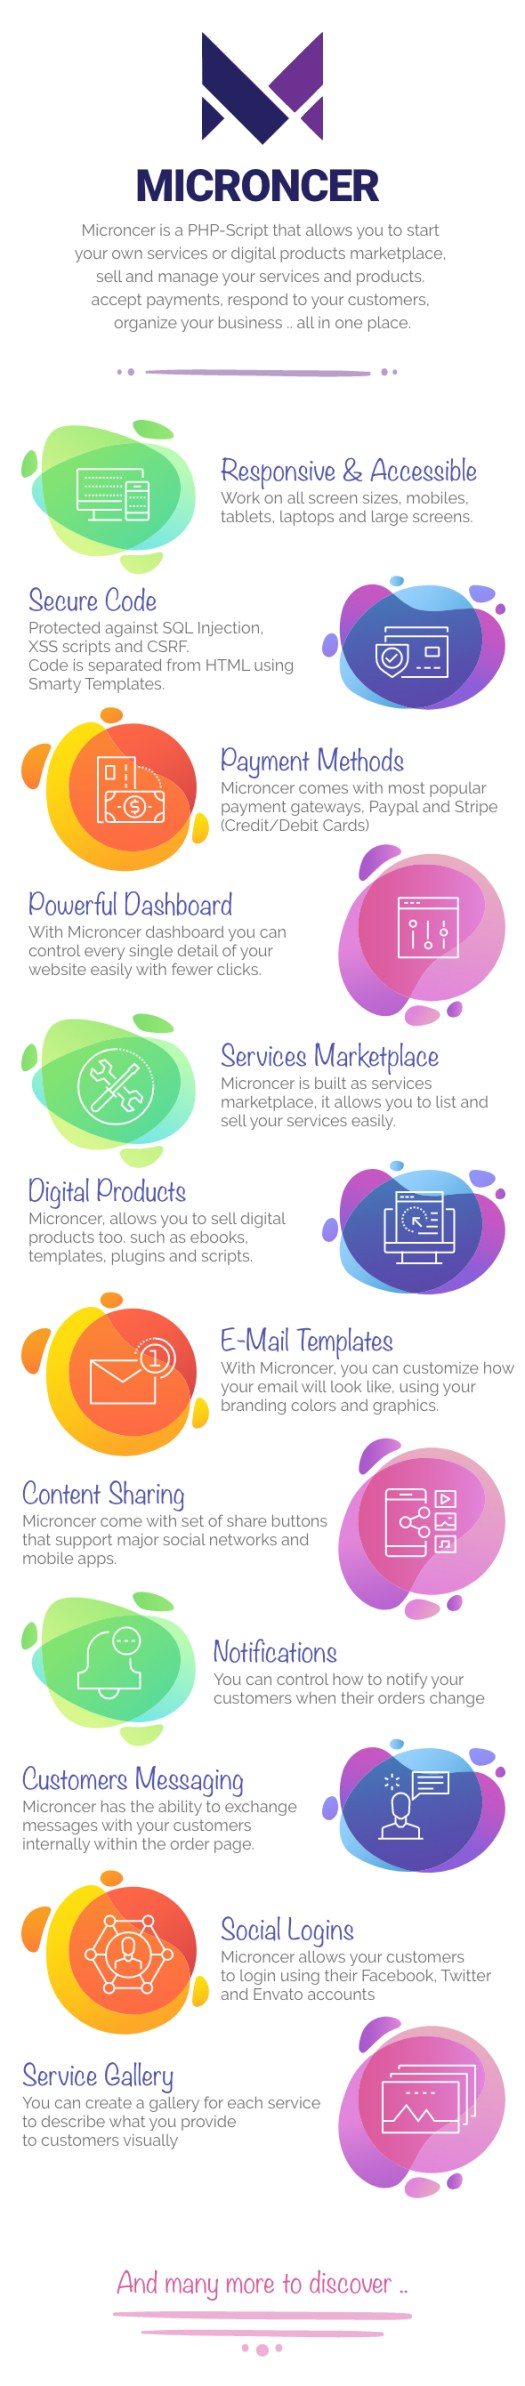 Microncer - Services and Digital Products Marketplace - 1